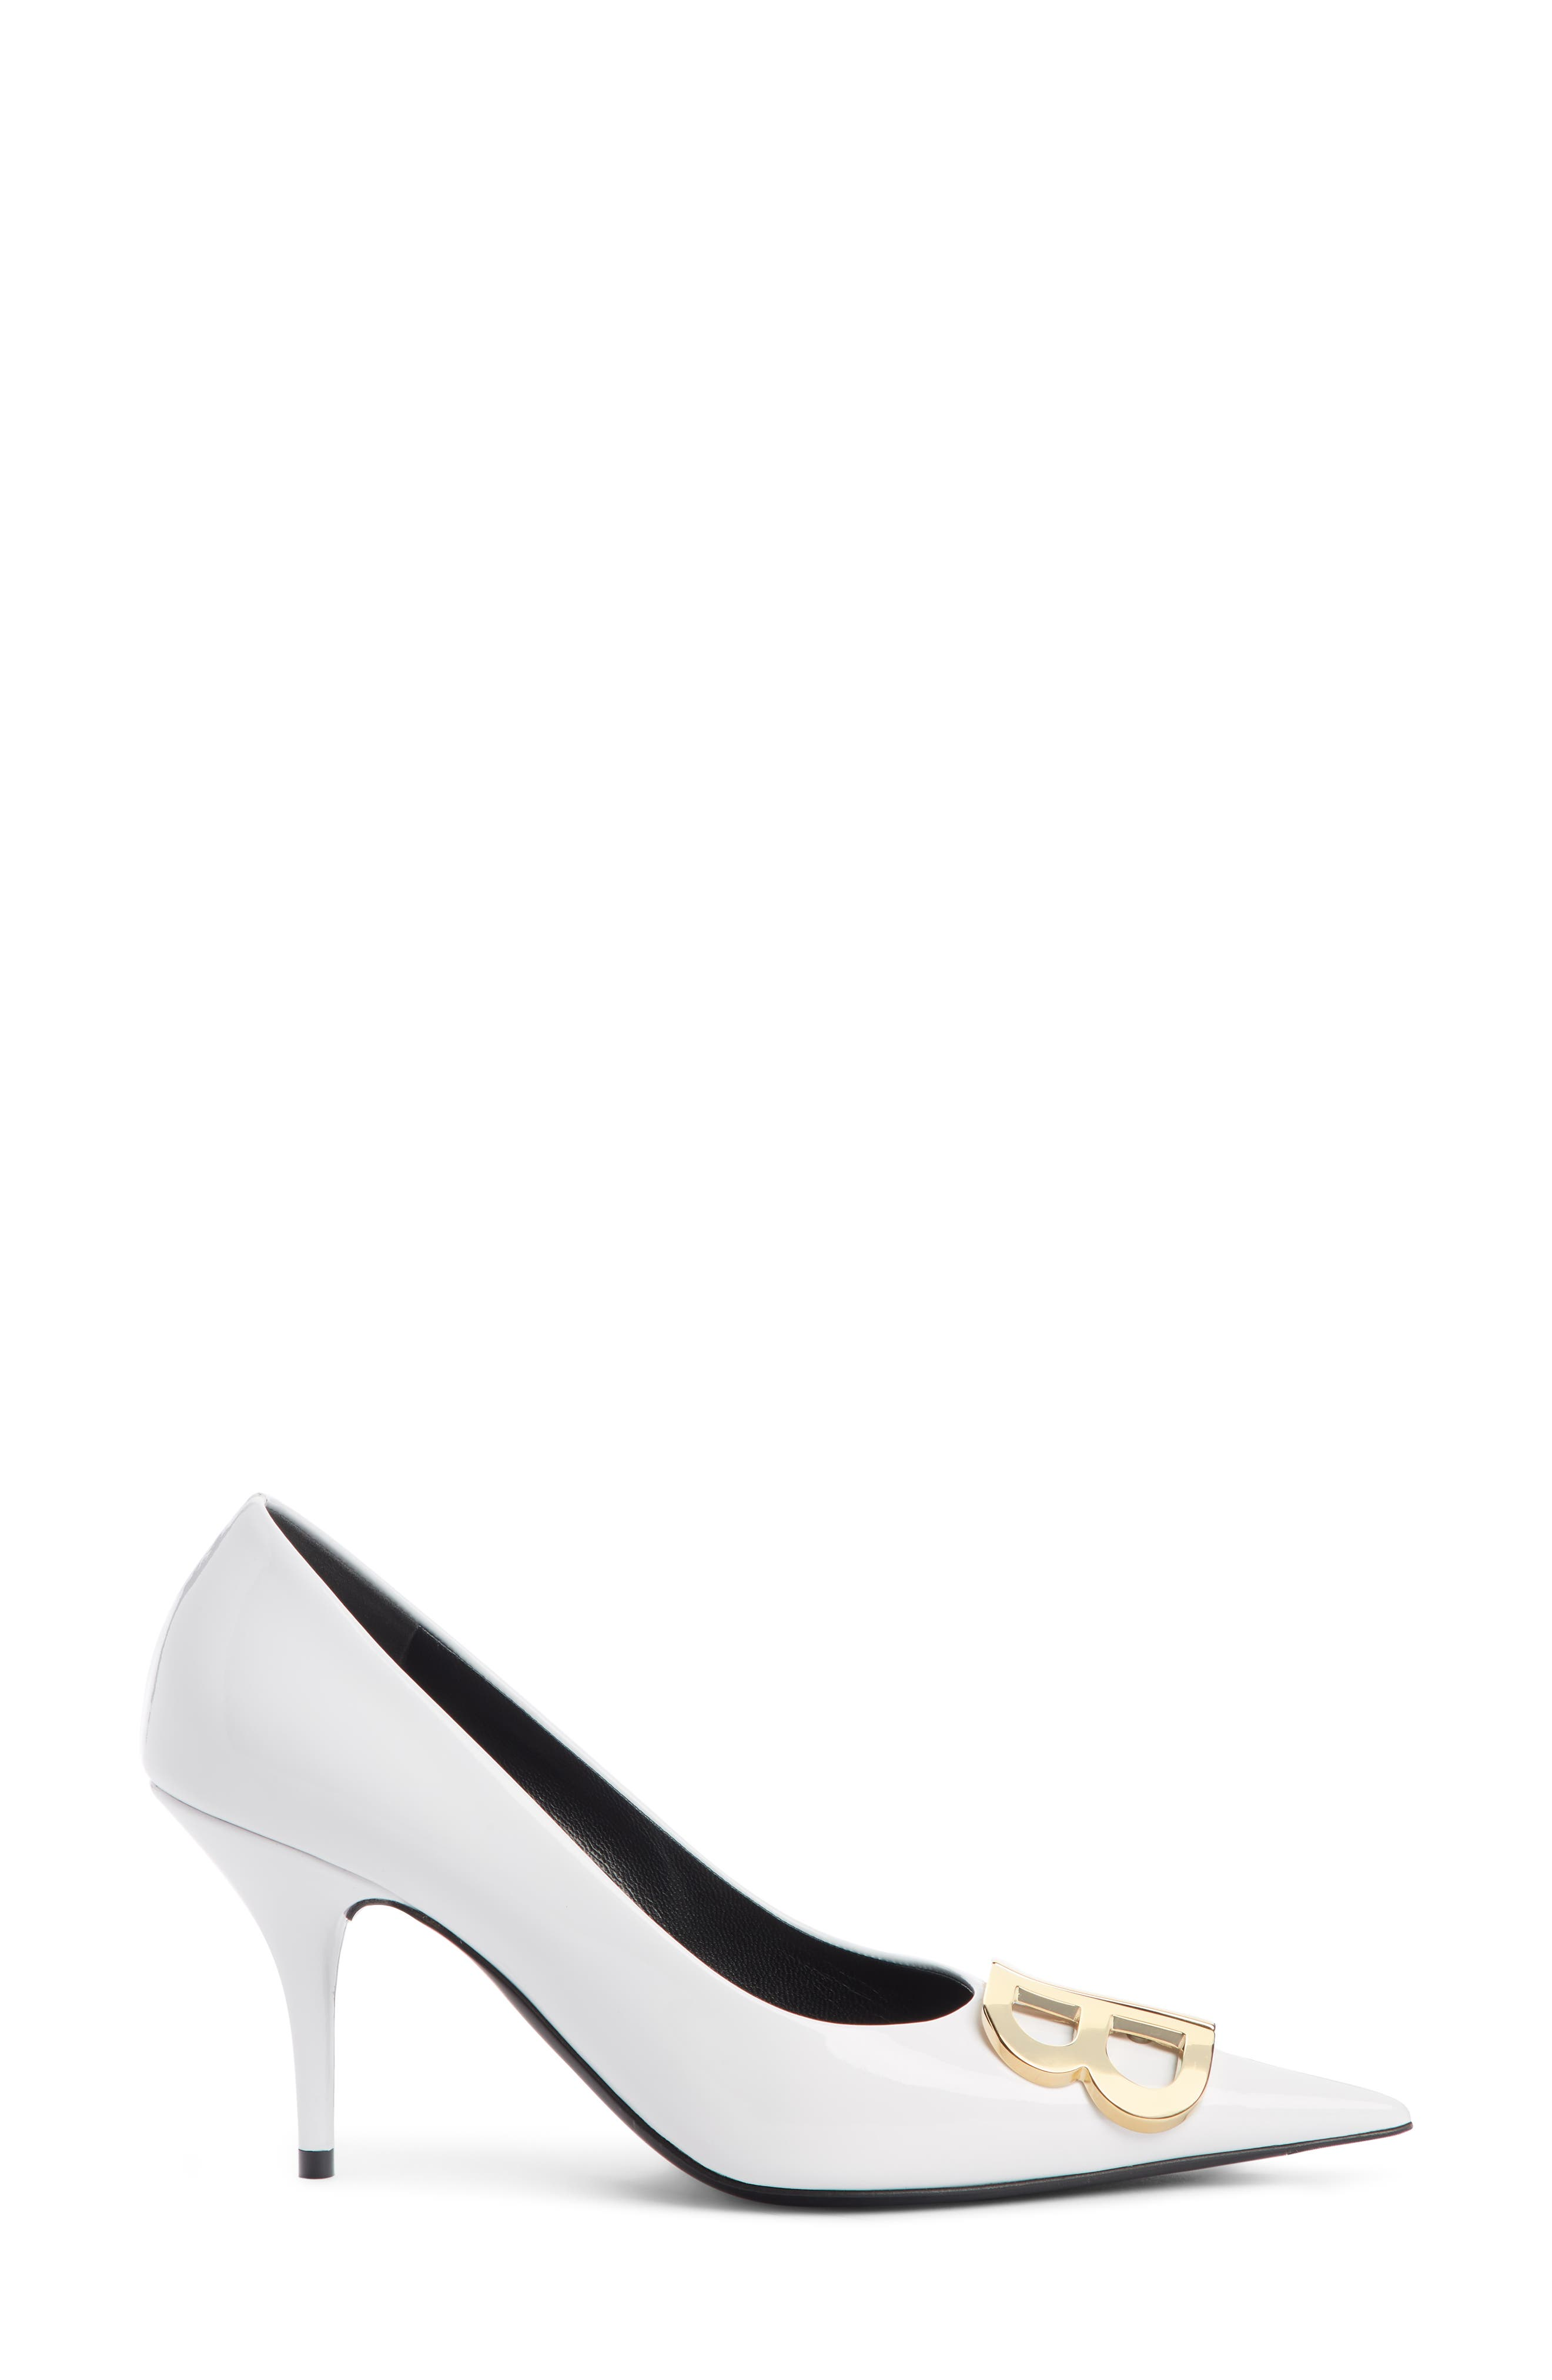 BB Pointy Toe Pump,                             Alternate thumbnail 3, color,                             WHITE PATENT